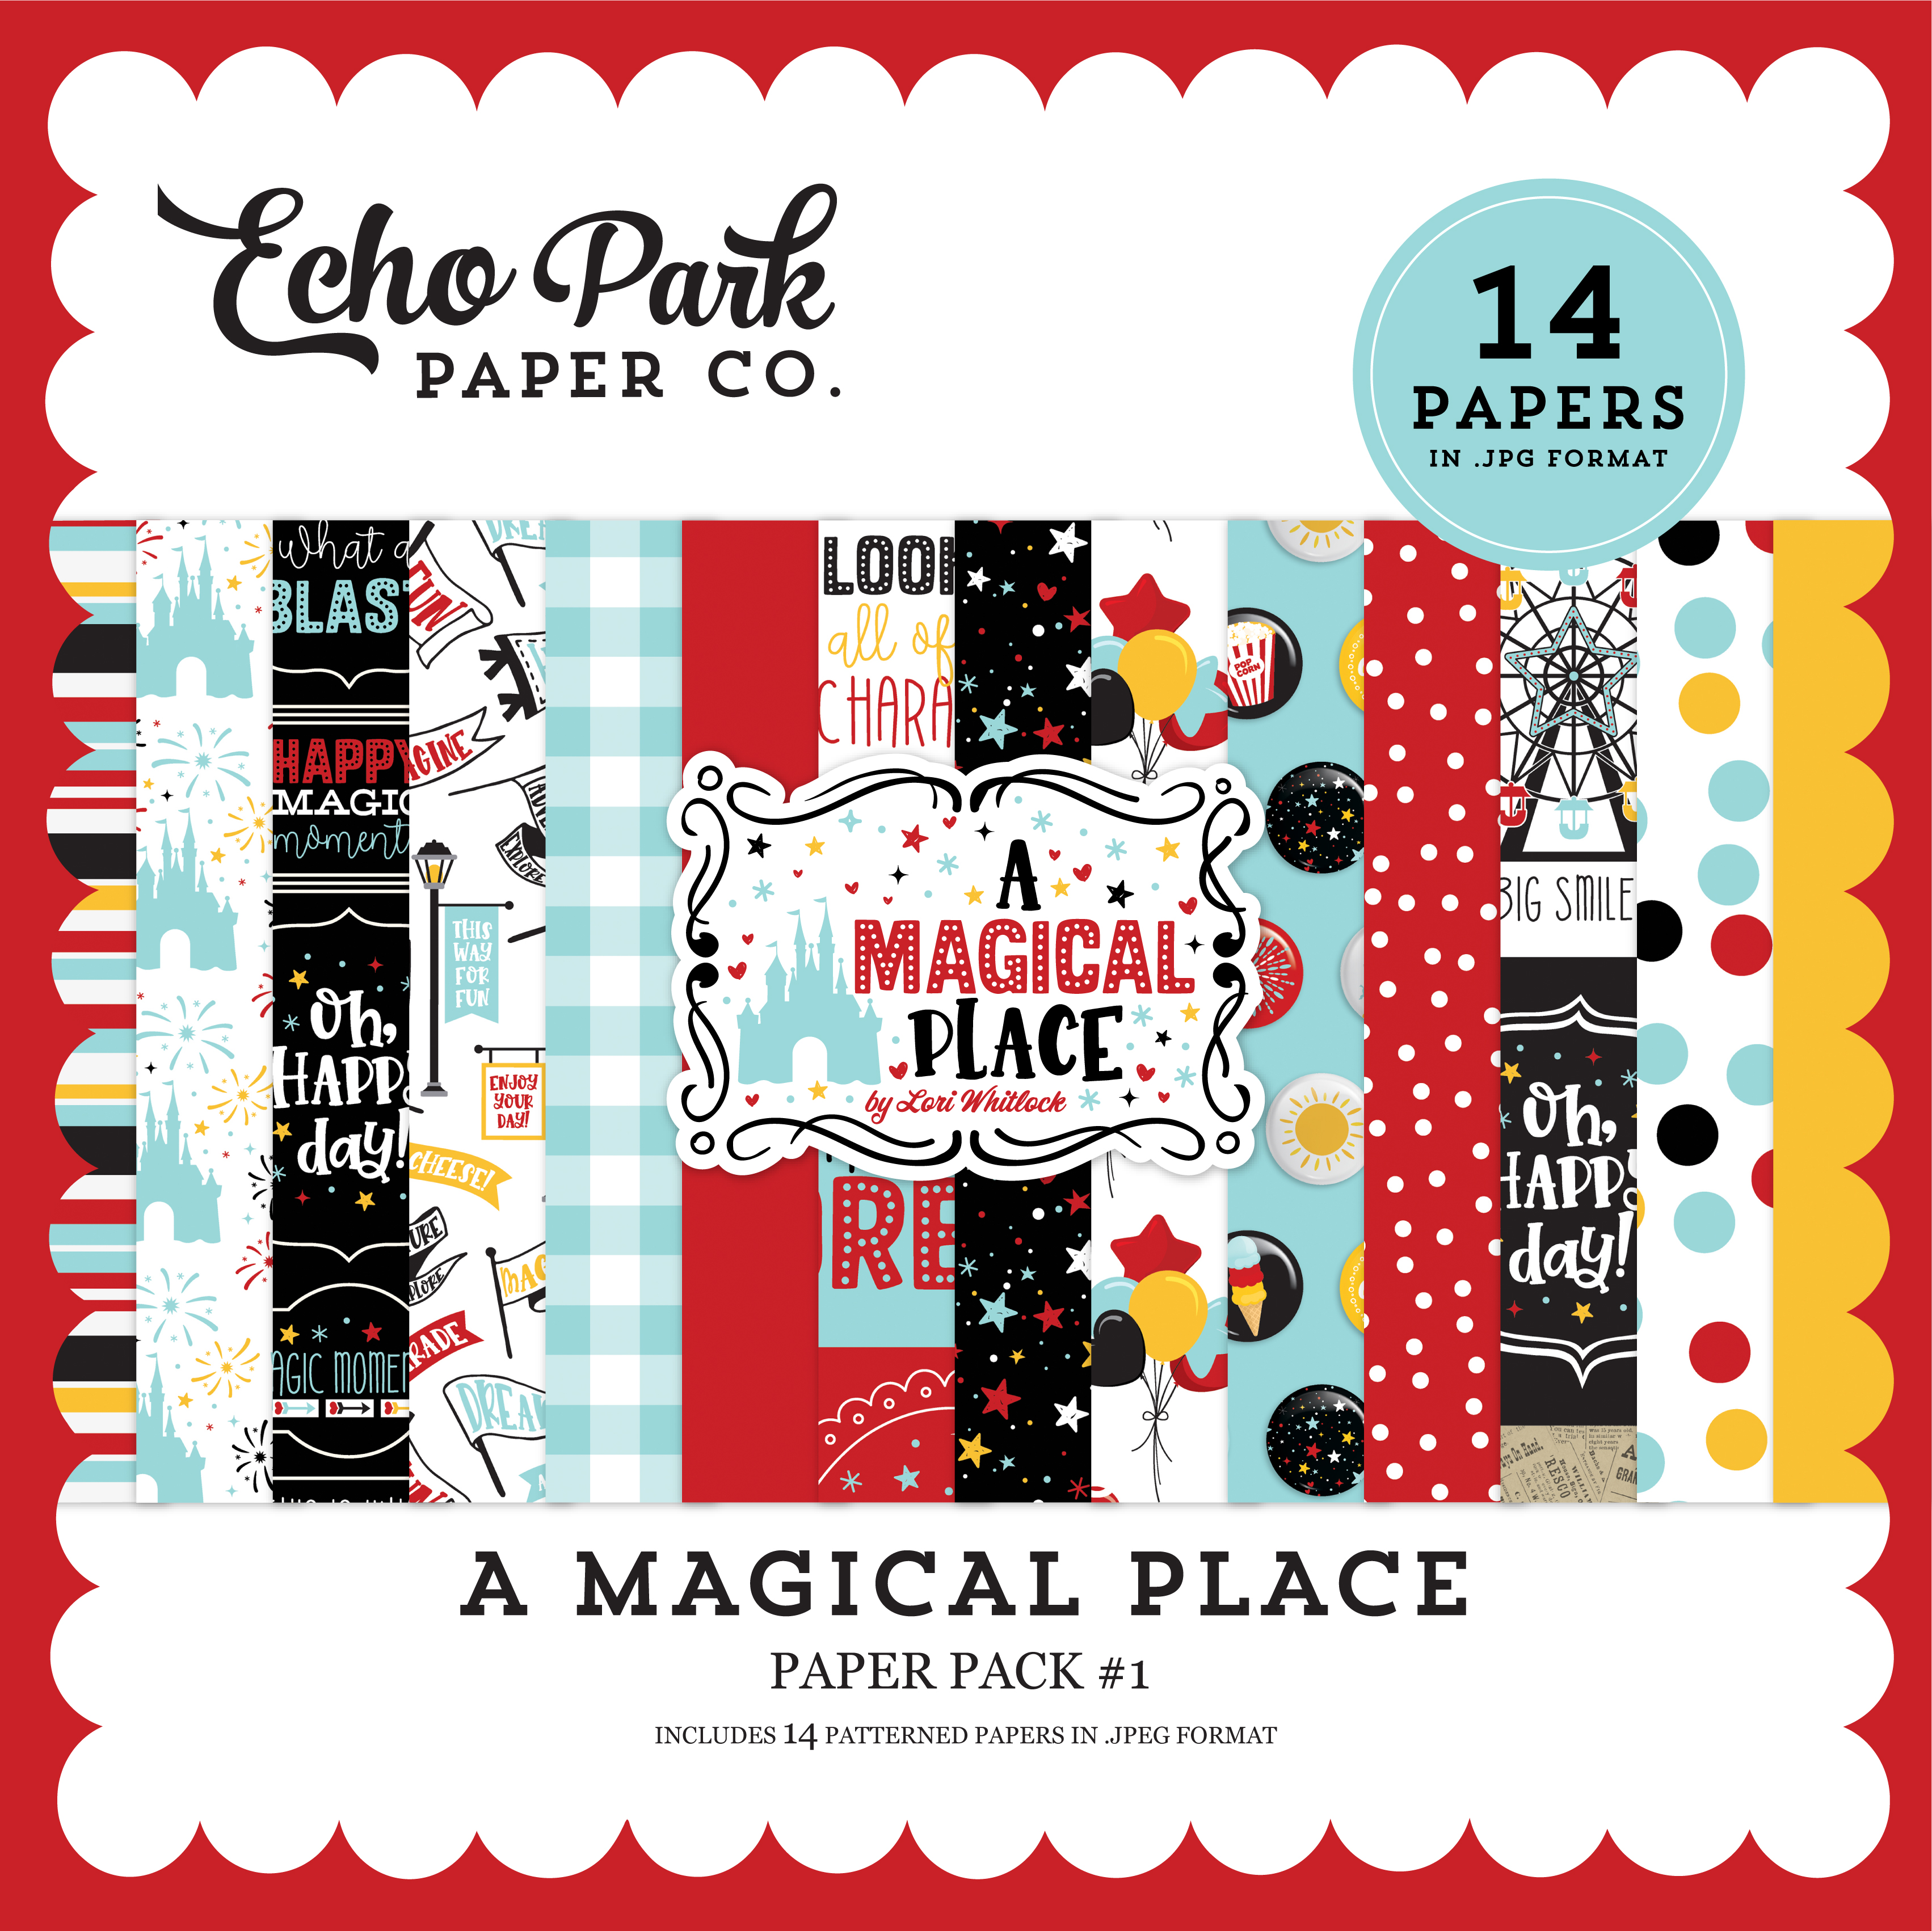 A Magical Place Paper Pack #1